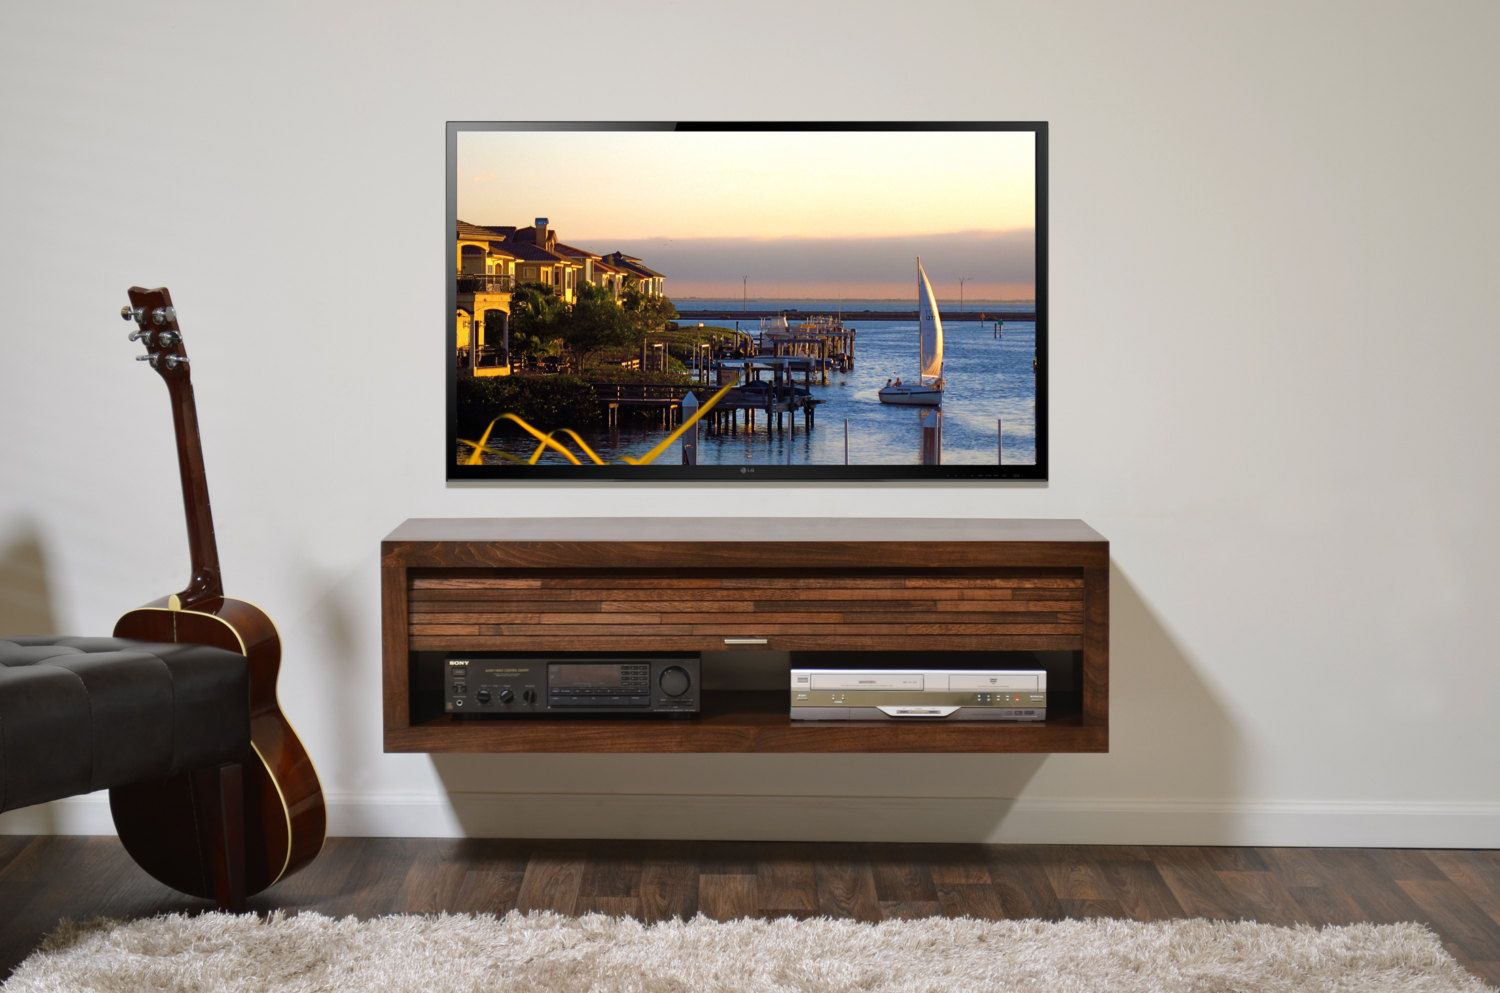 17 Best images about Floating shelves on Pinterest | Wall mount, Modern  entertainment center and Shelves